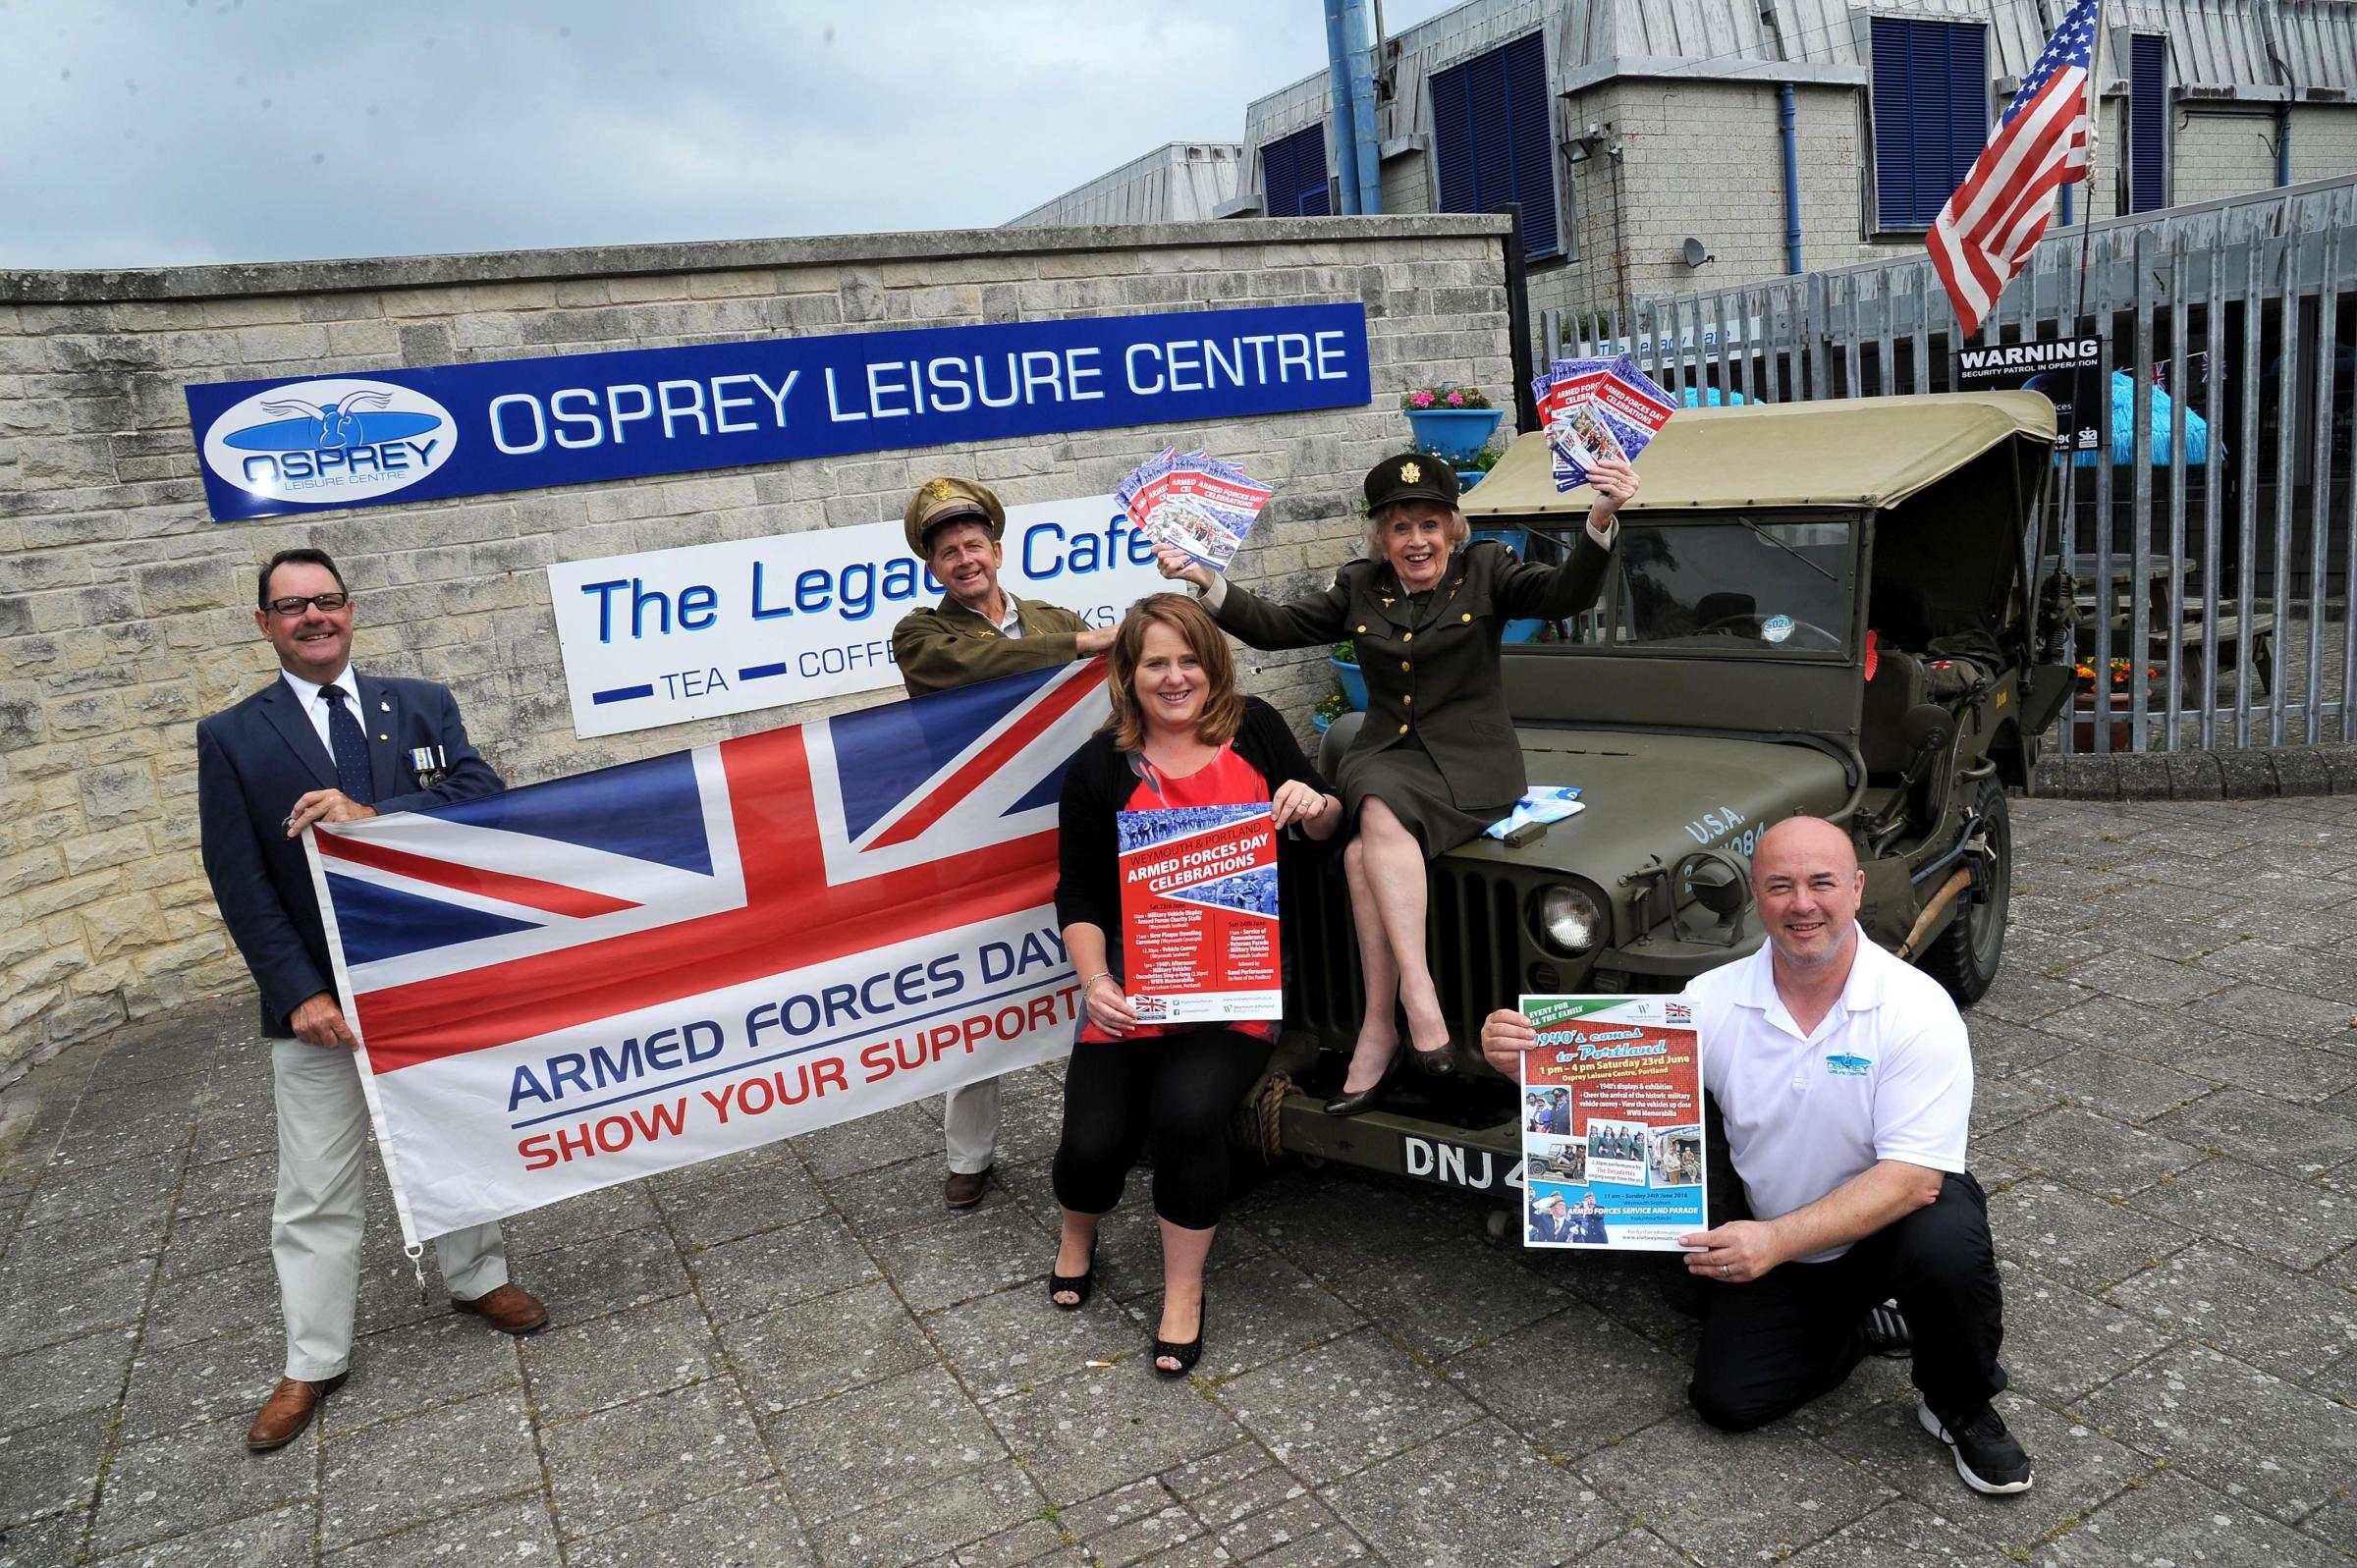 Launch of Weymouth Armed Forces Day 2018 at Osprey Leisure Centre, left to right, Richard Kosier, Kevin Butcher, Charlie Sheppard, Poppy Butcher and manager of Osprey John Jennison, 12/06/18, PICTURE: FINNBARR WEBSTER/F19710